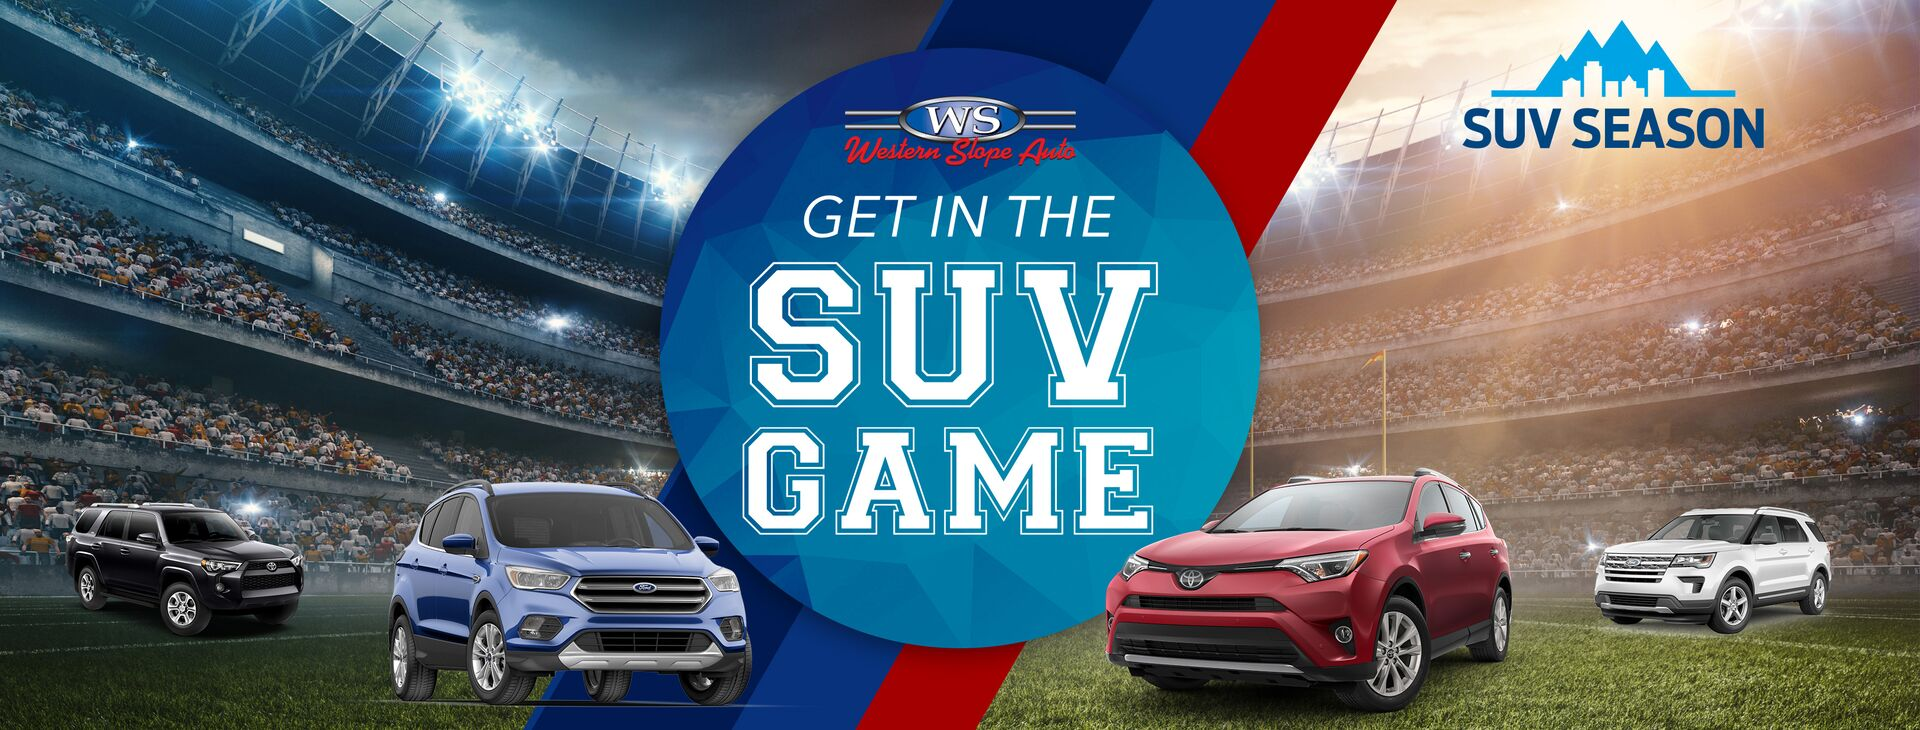 Get in the SUV Game with Western Slope Auto!